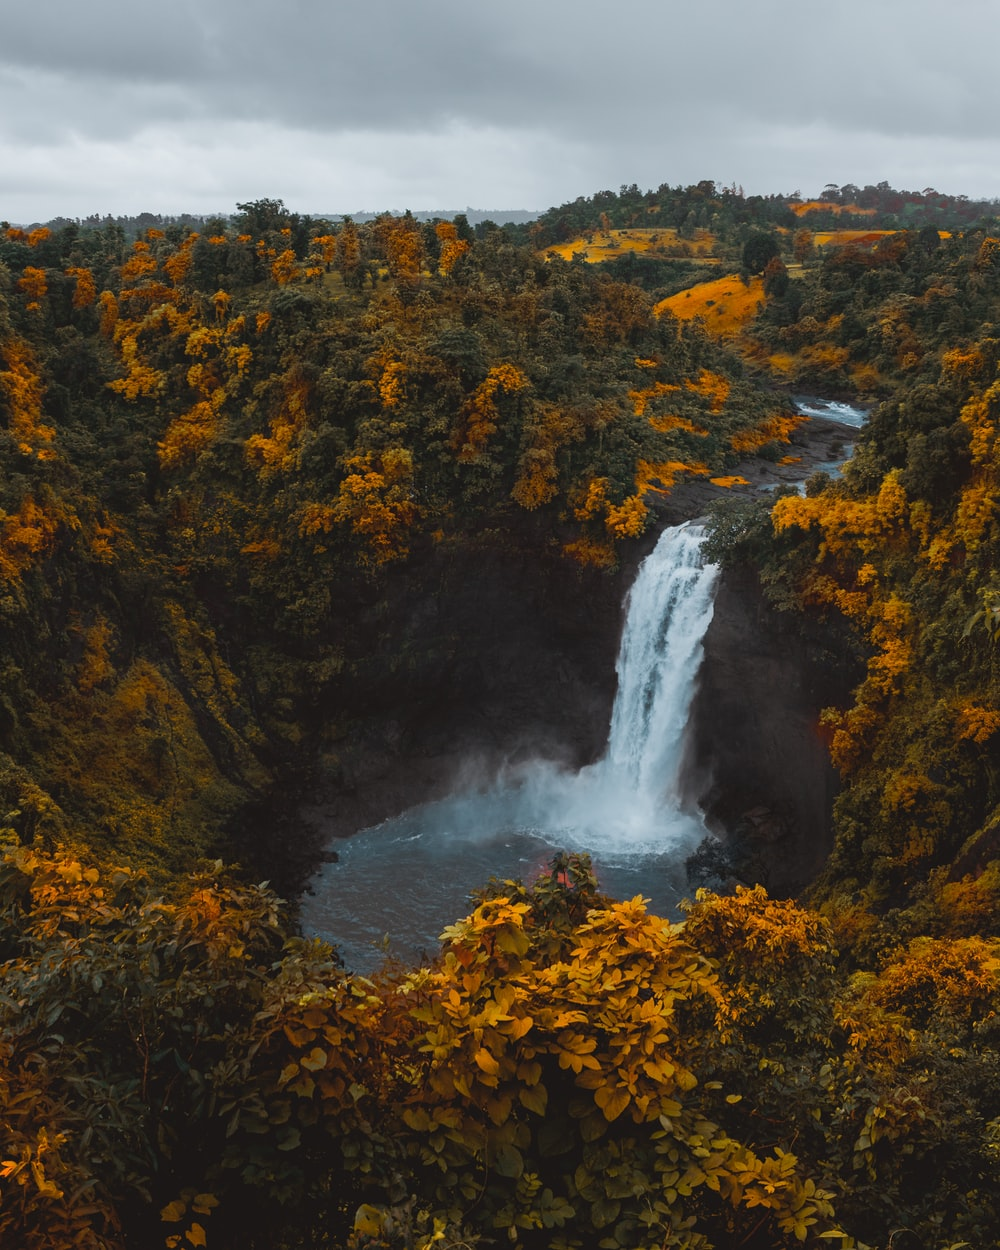 birds'-eye view photography of waterfall in forest